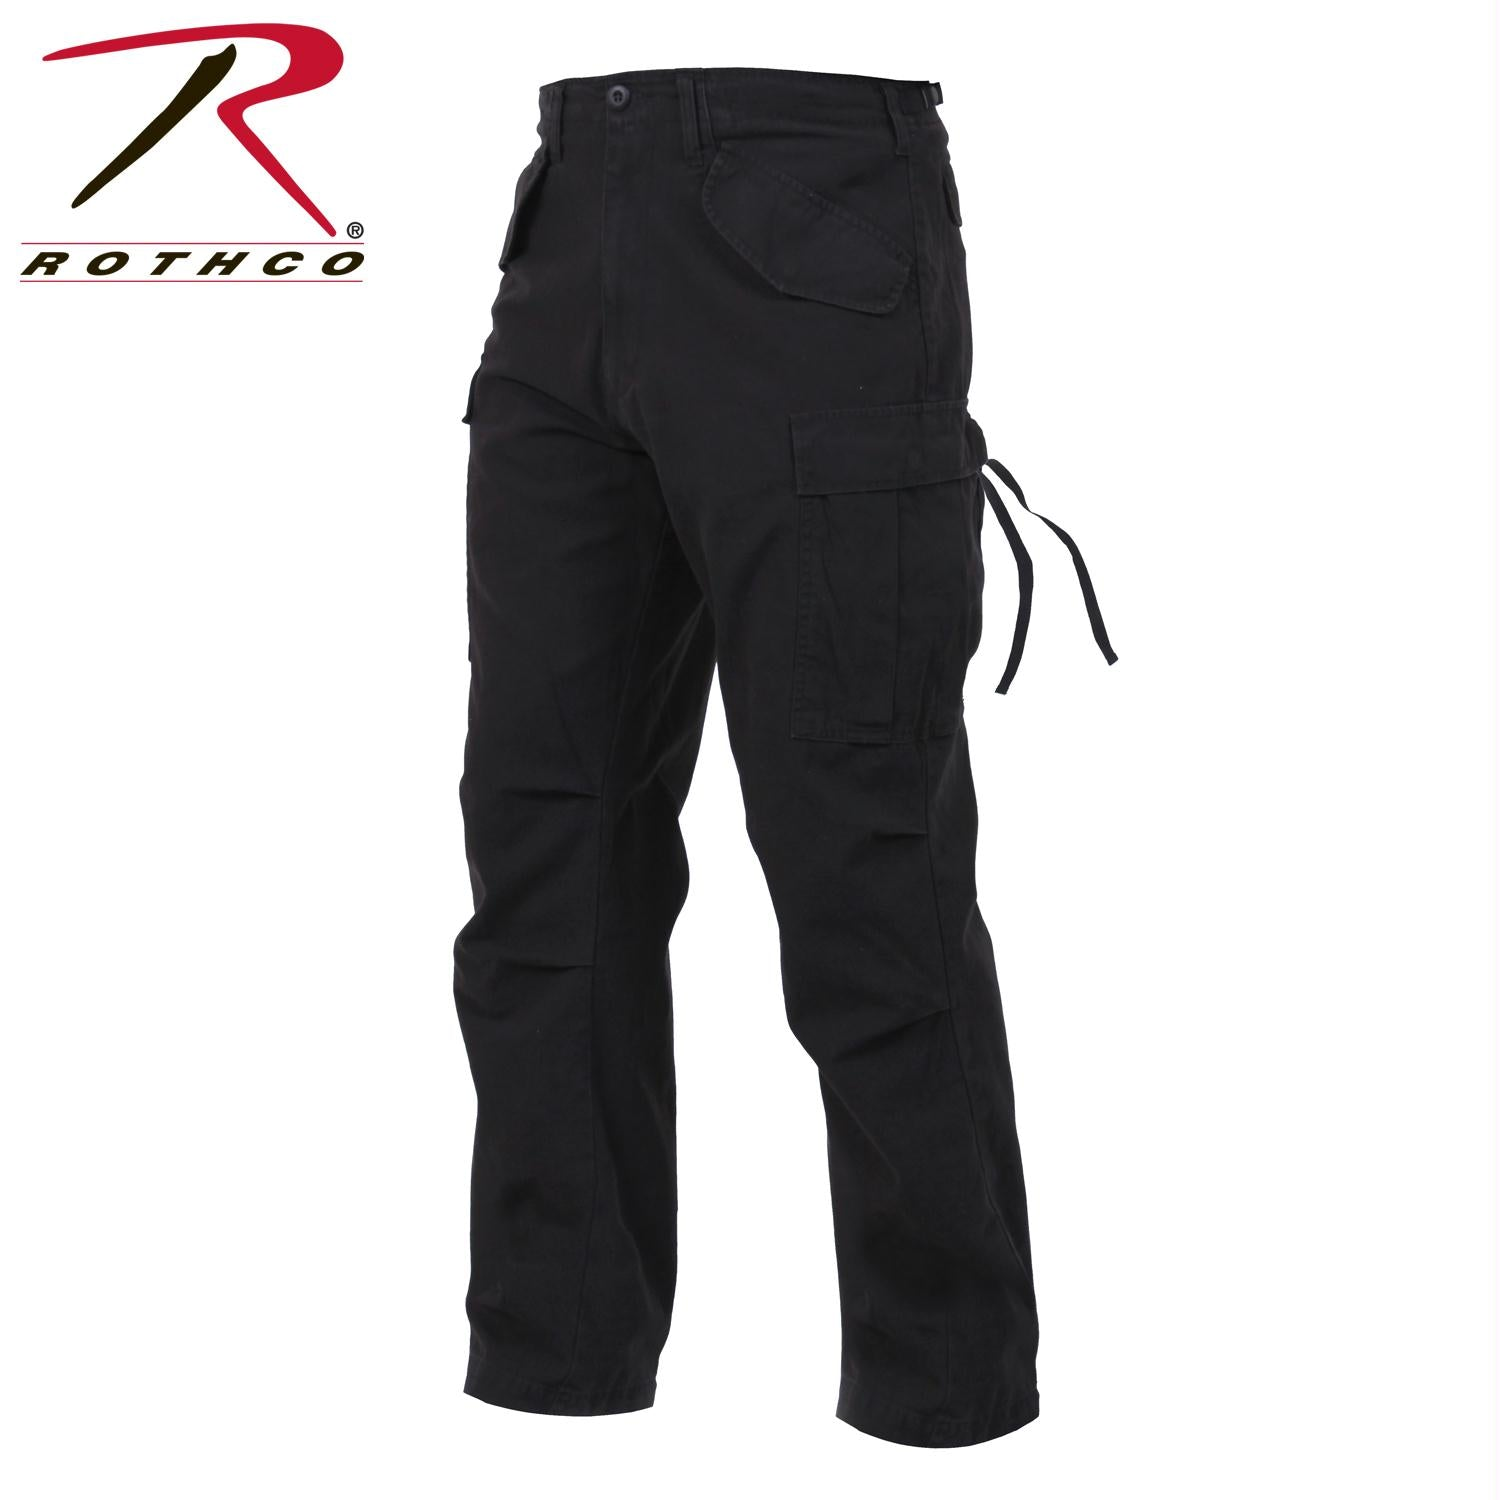 Rothco Vintage M-65 Field Pant - Black / S